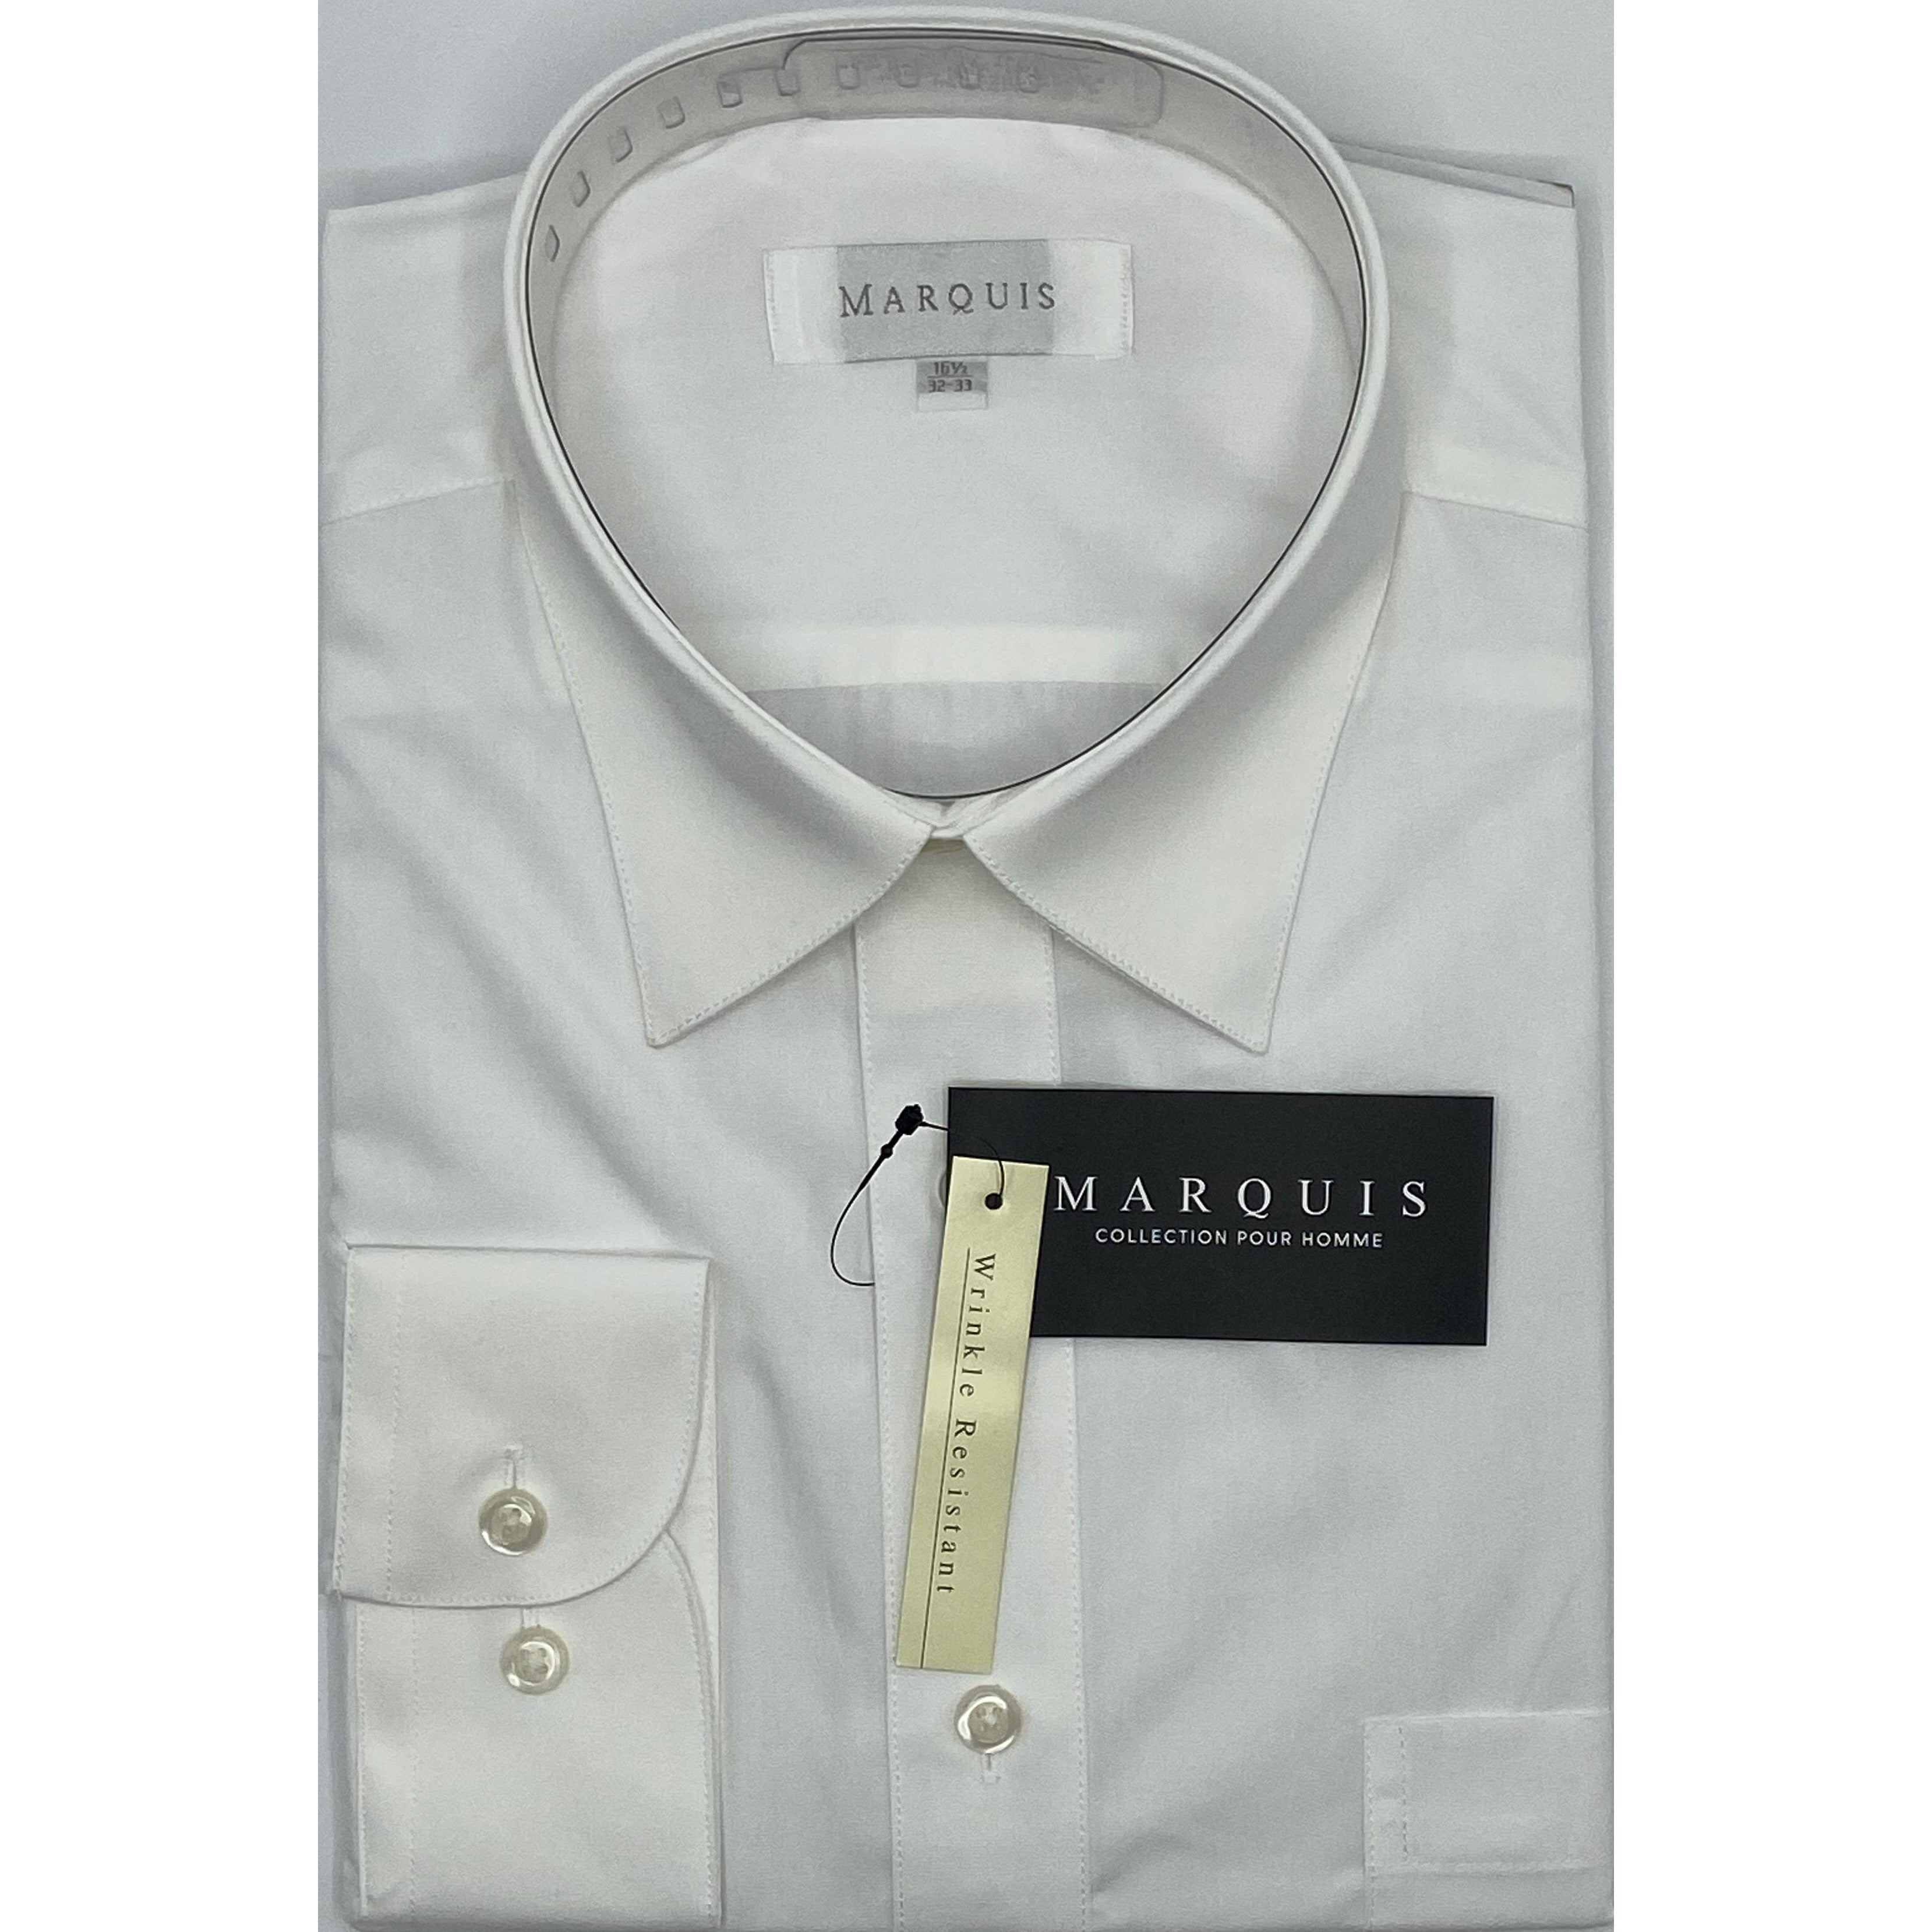 MARQUIS ECRU SLIM FIT SOLID DRESS SHIRT